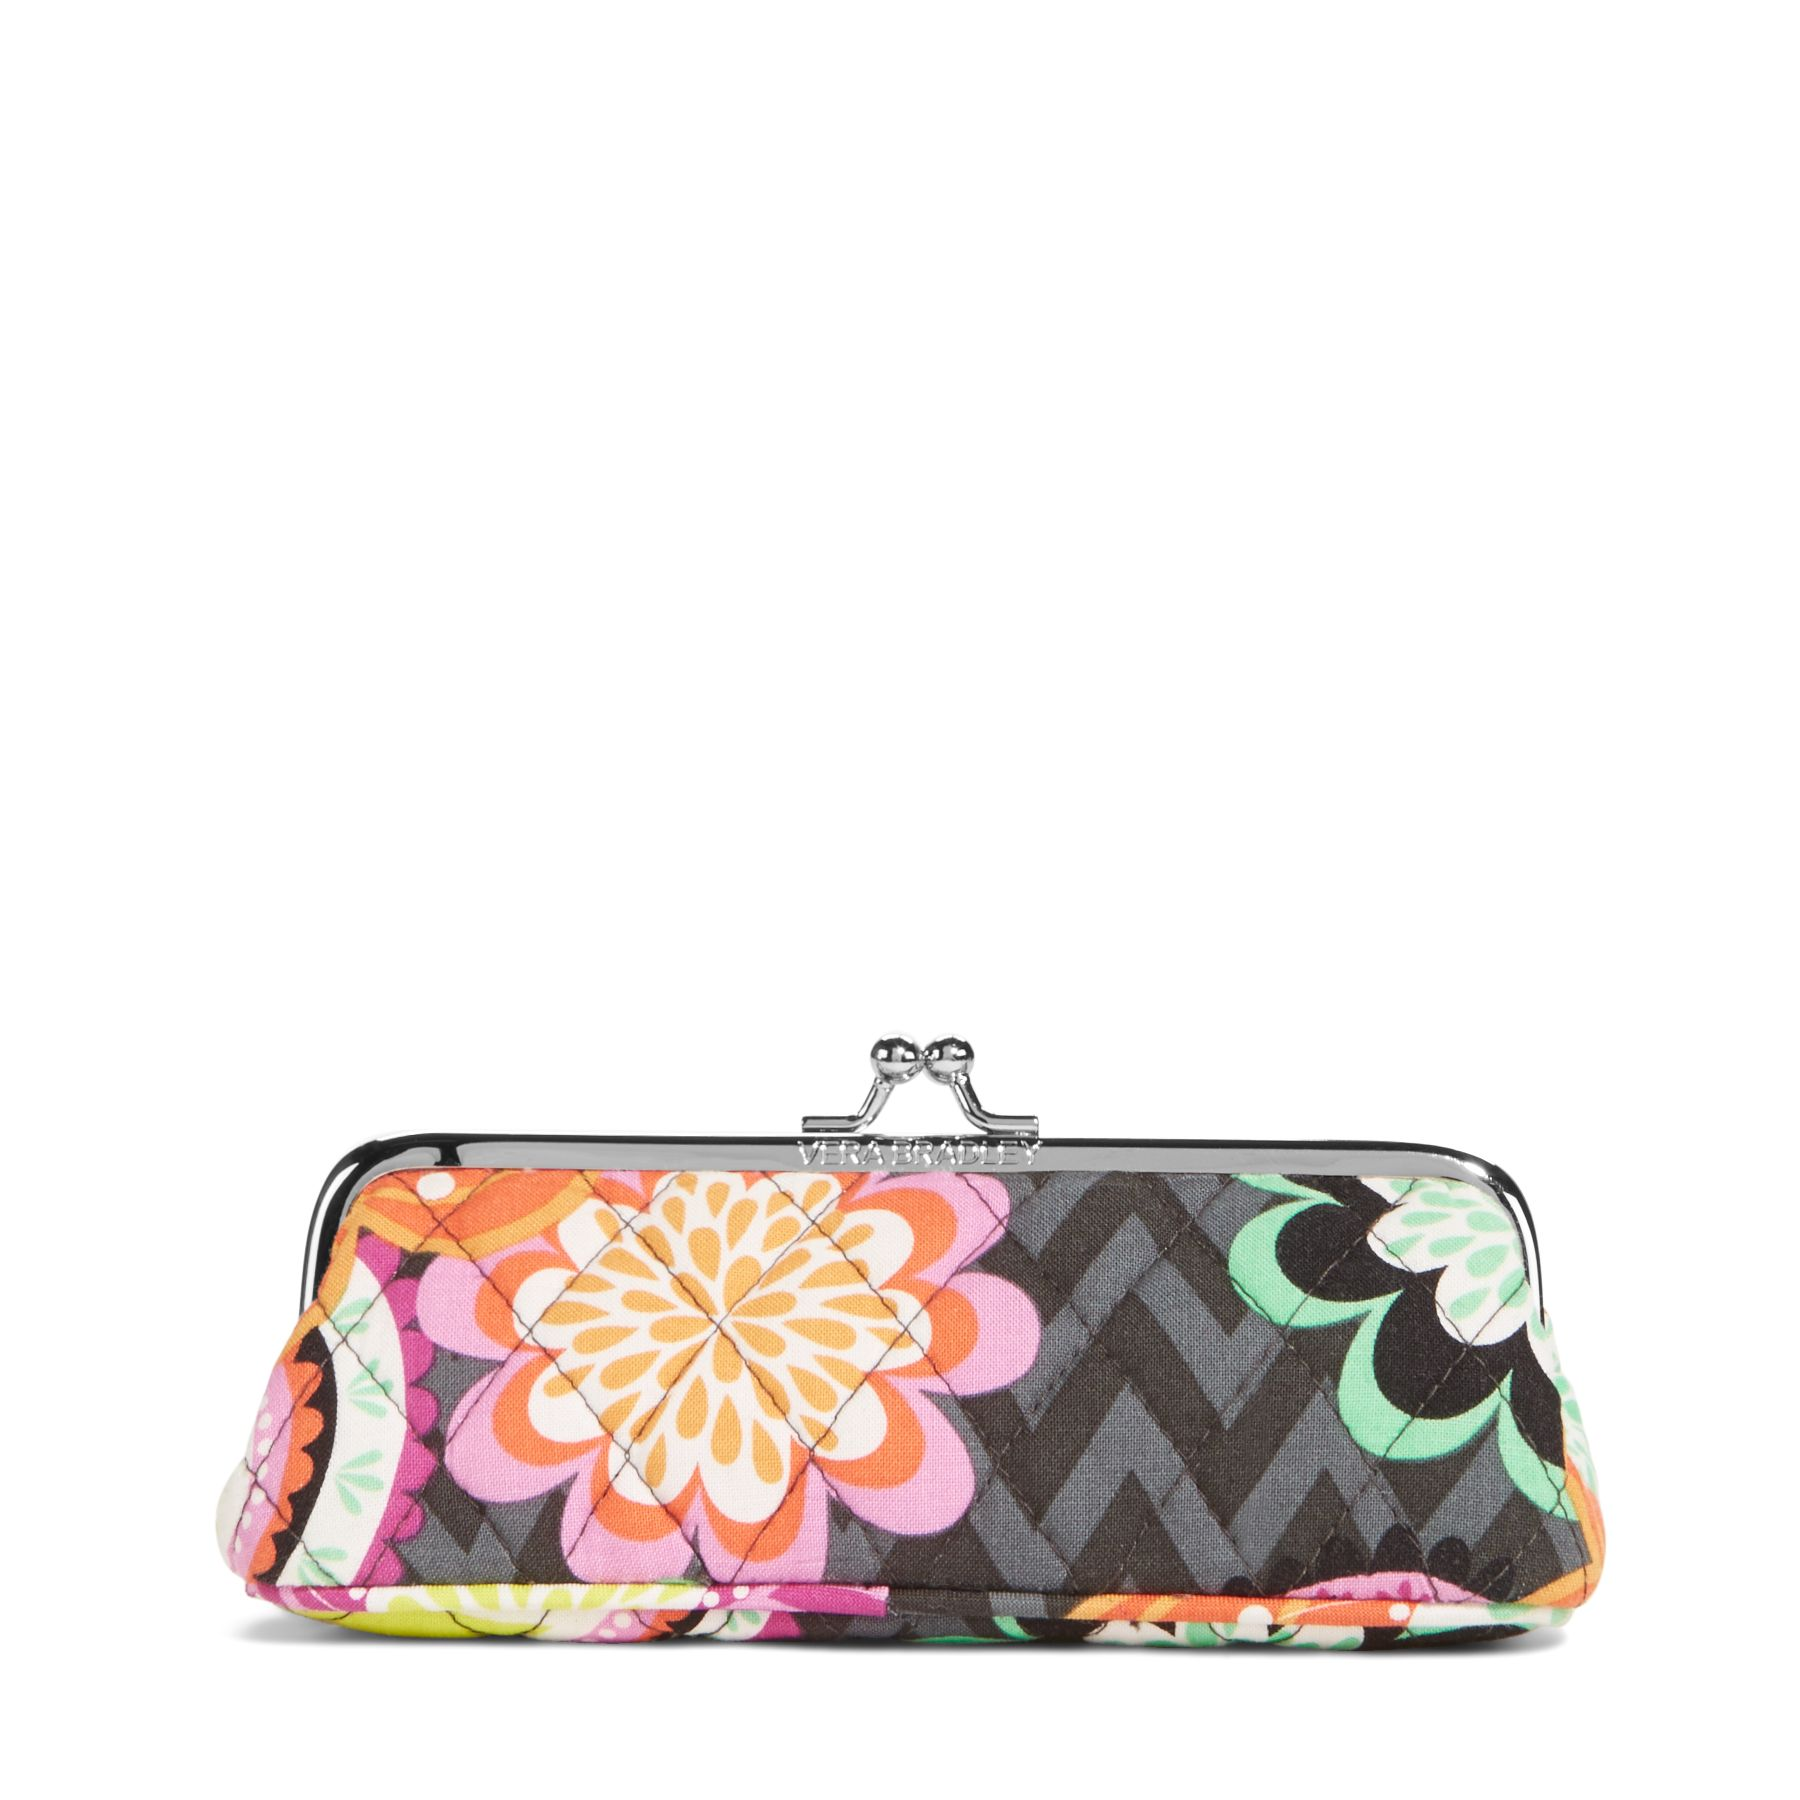 Vera Bradley Kisslock Case in Ziggy Zinnia